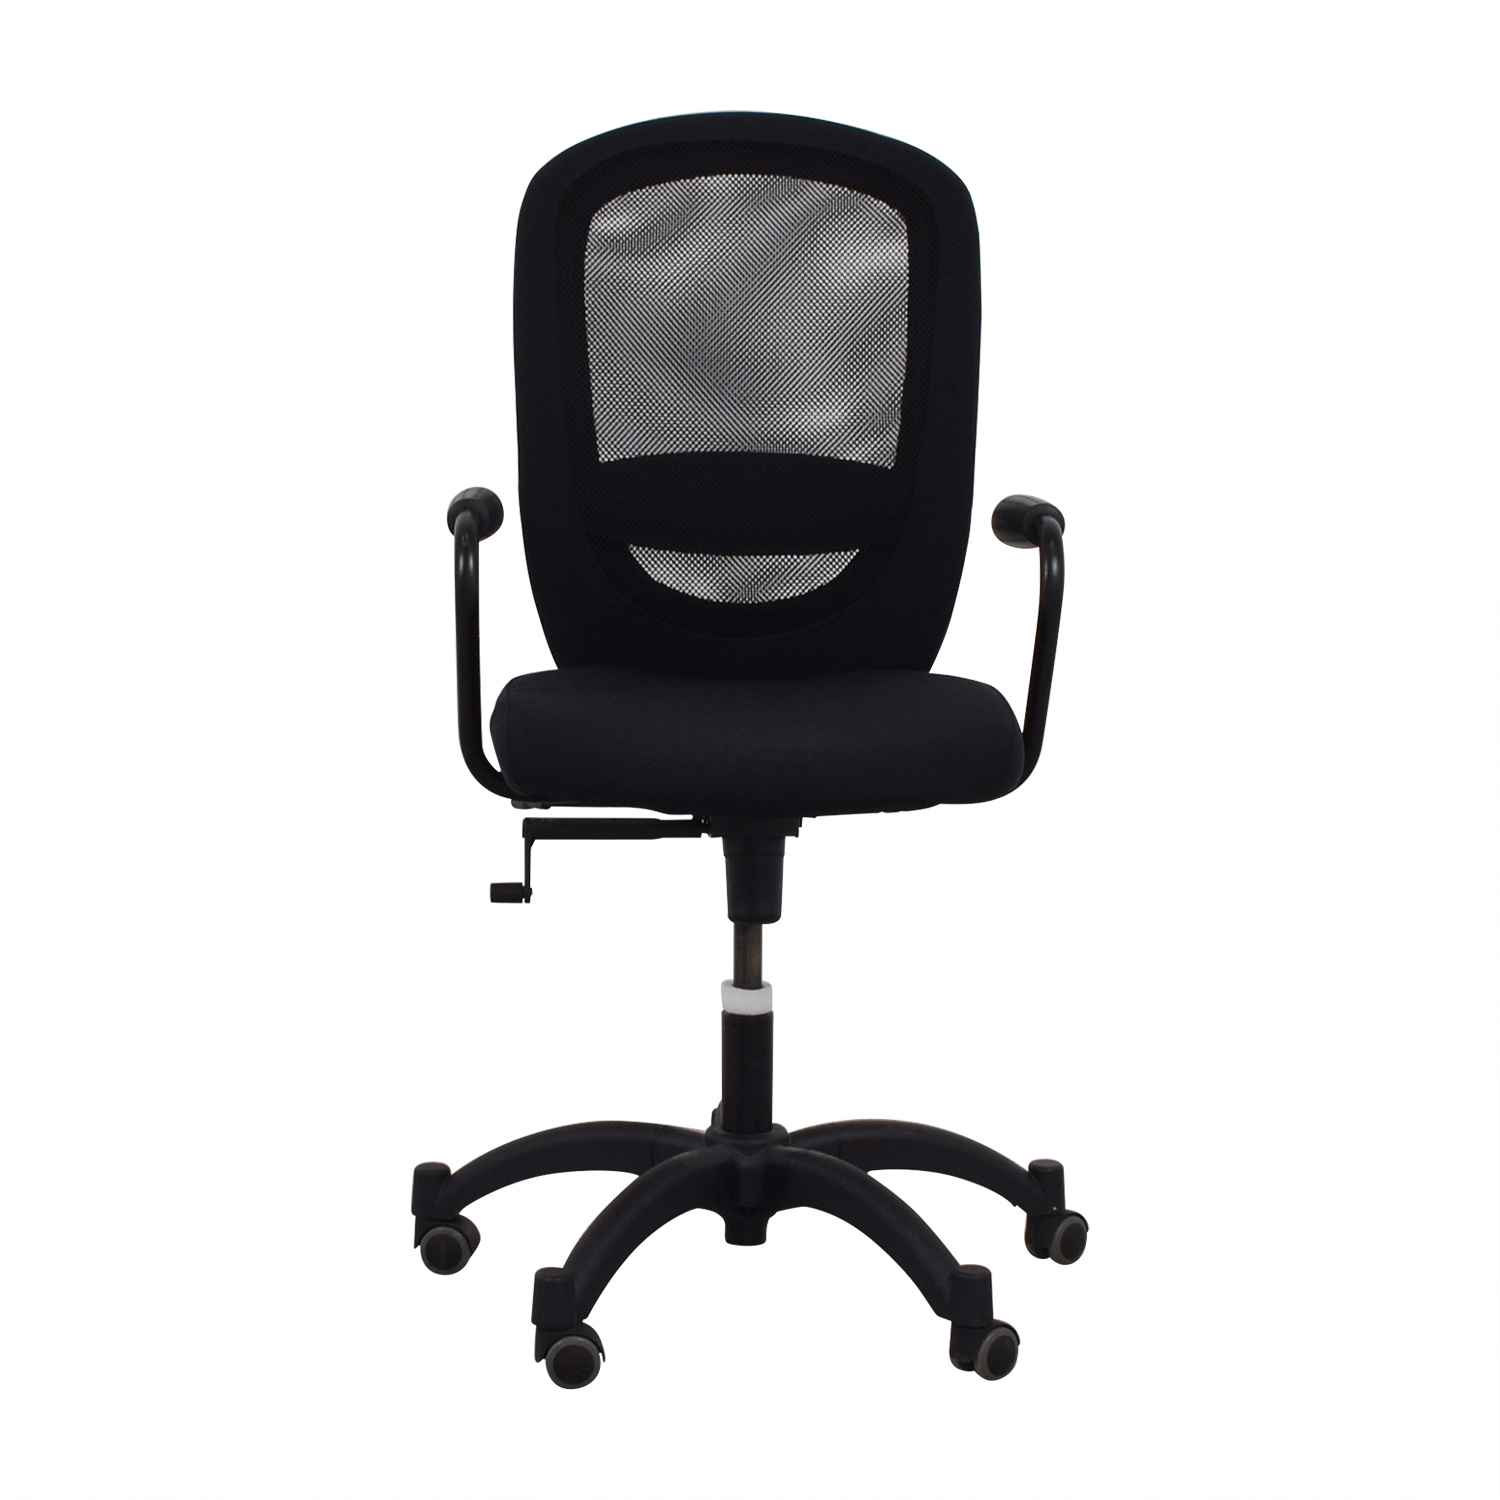 Superieur IKEA IKEA Vilgot Office Chair